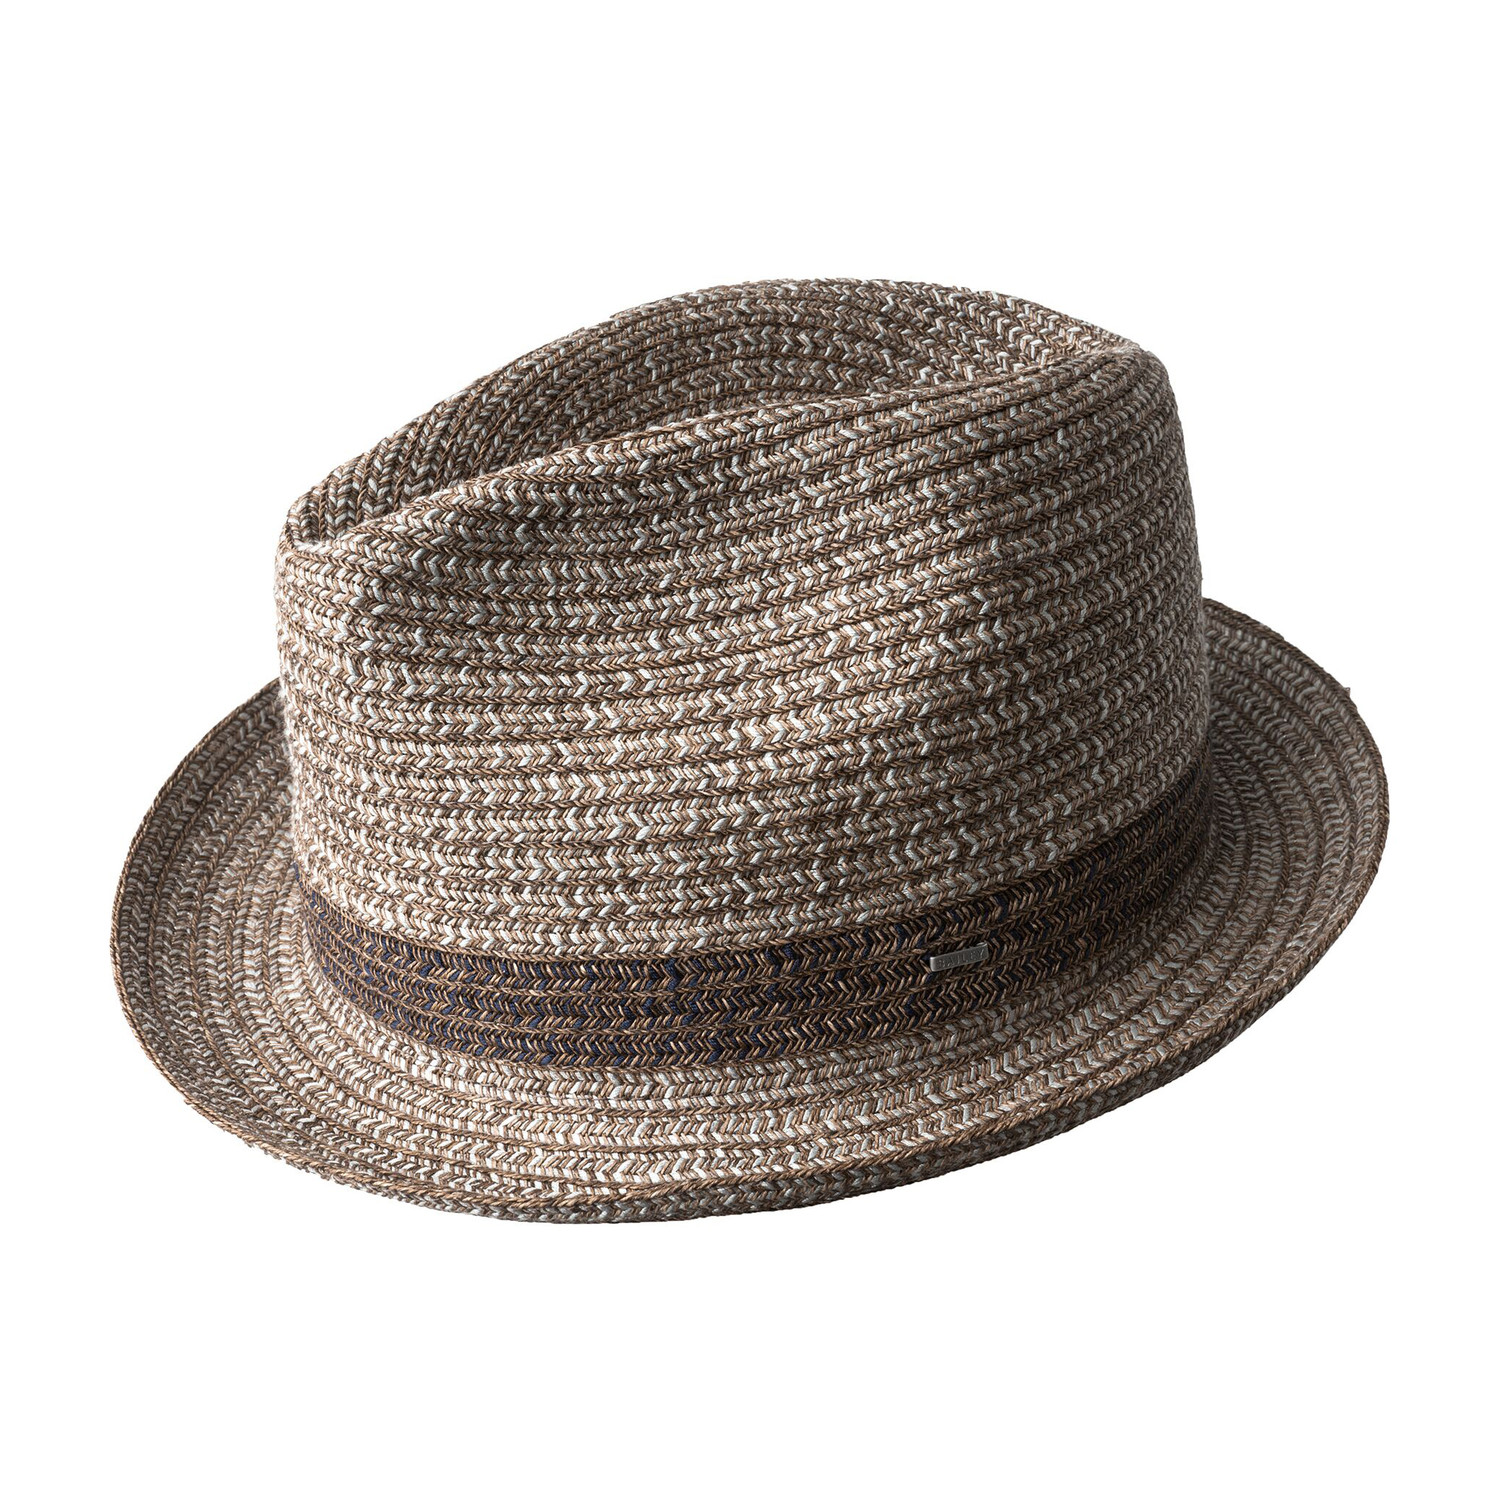 02be60eac08 Truro    Bark (S) - Bailey Hat Company - Touch of Modern